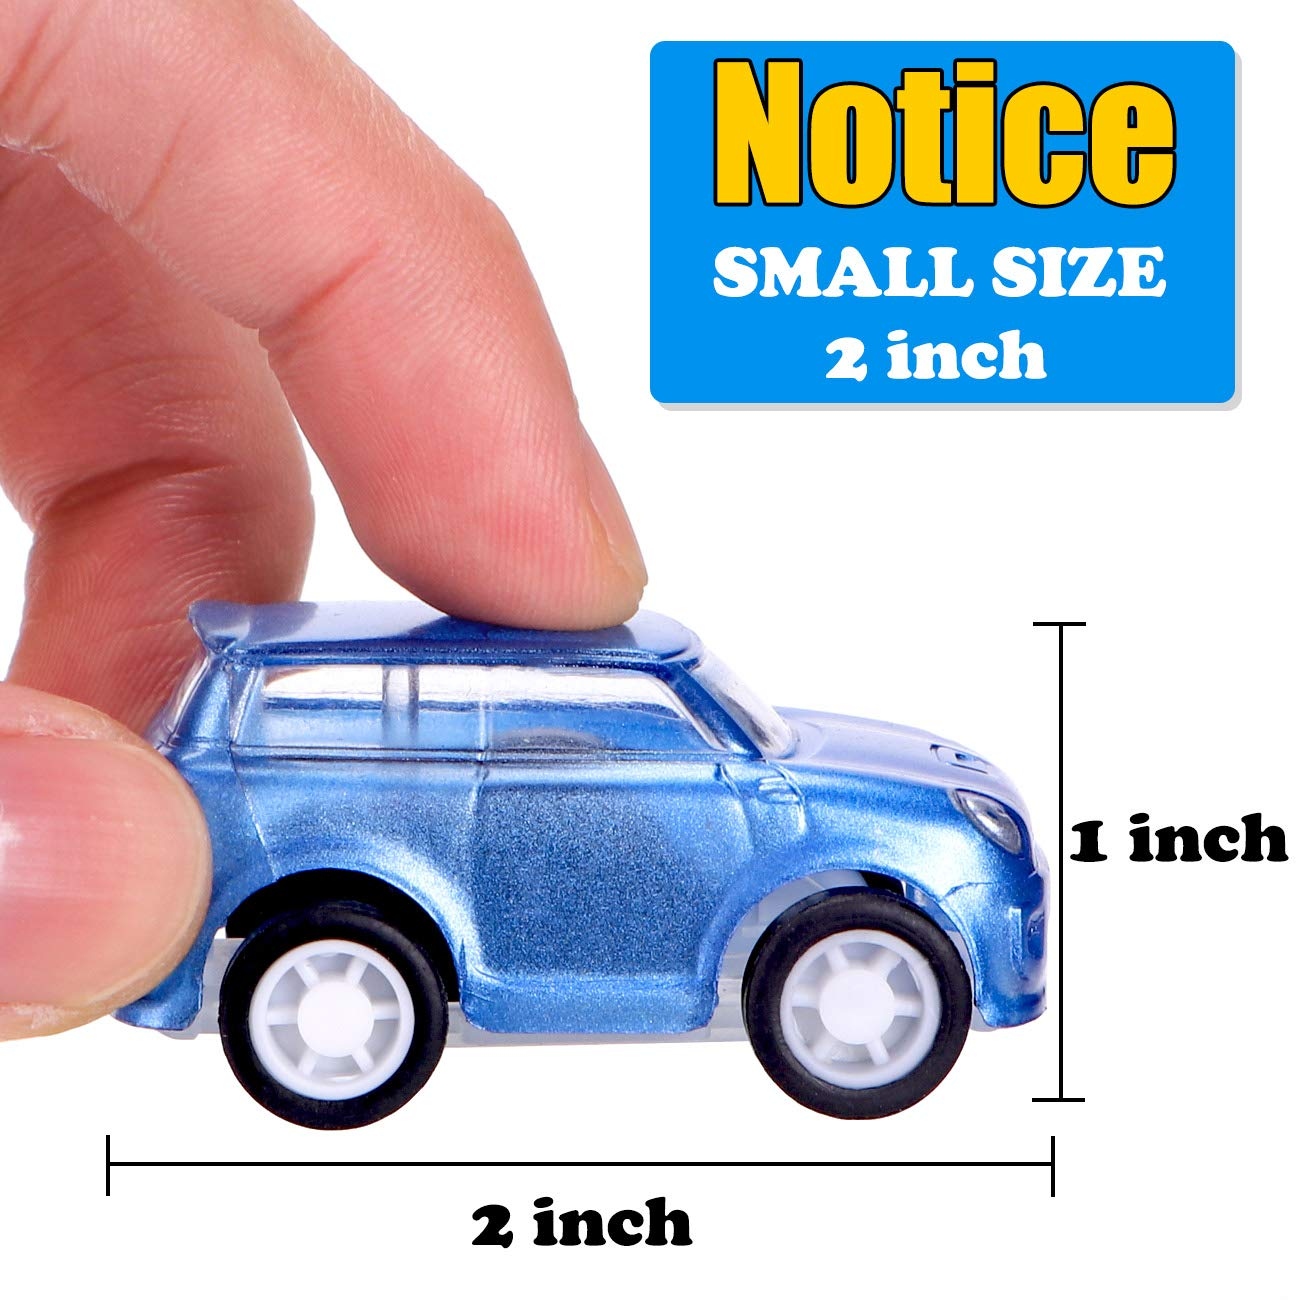 12 Pcs Filled Easter Eggs with Toy Cars,3.15''-Easter Pary Favor-Plastic Prefilled Eggs with Mini Pull Back Vehicles Toys for Toddlers by Sizonjoy (Image #5)